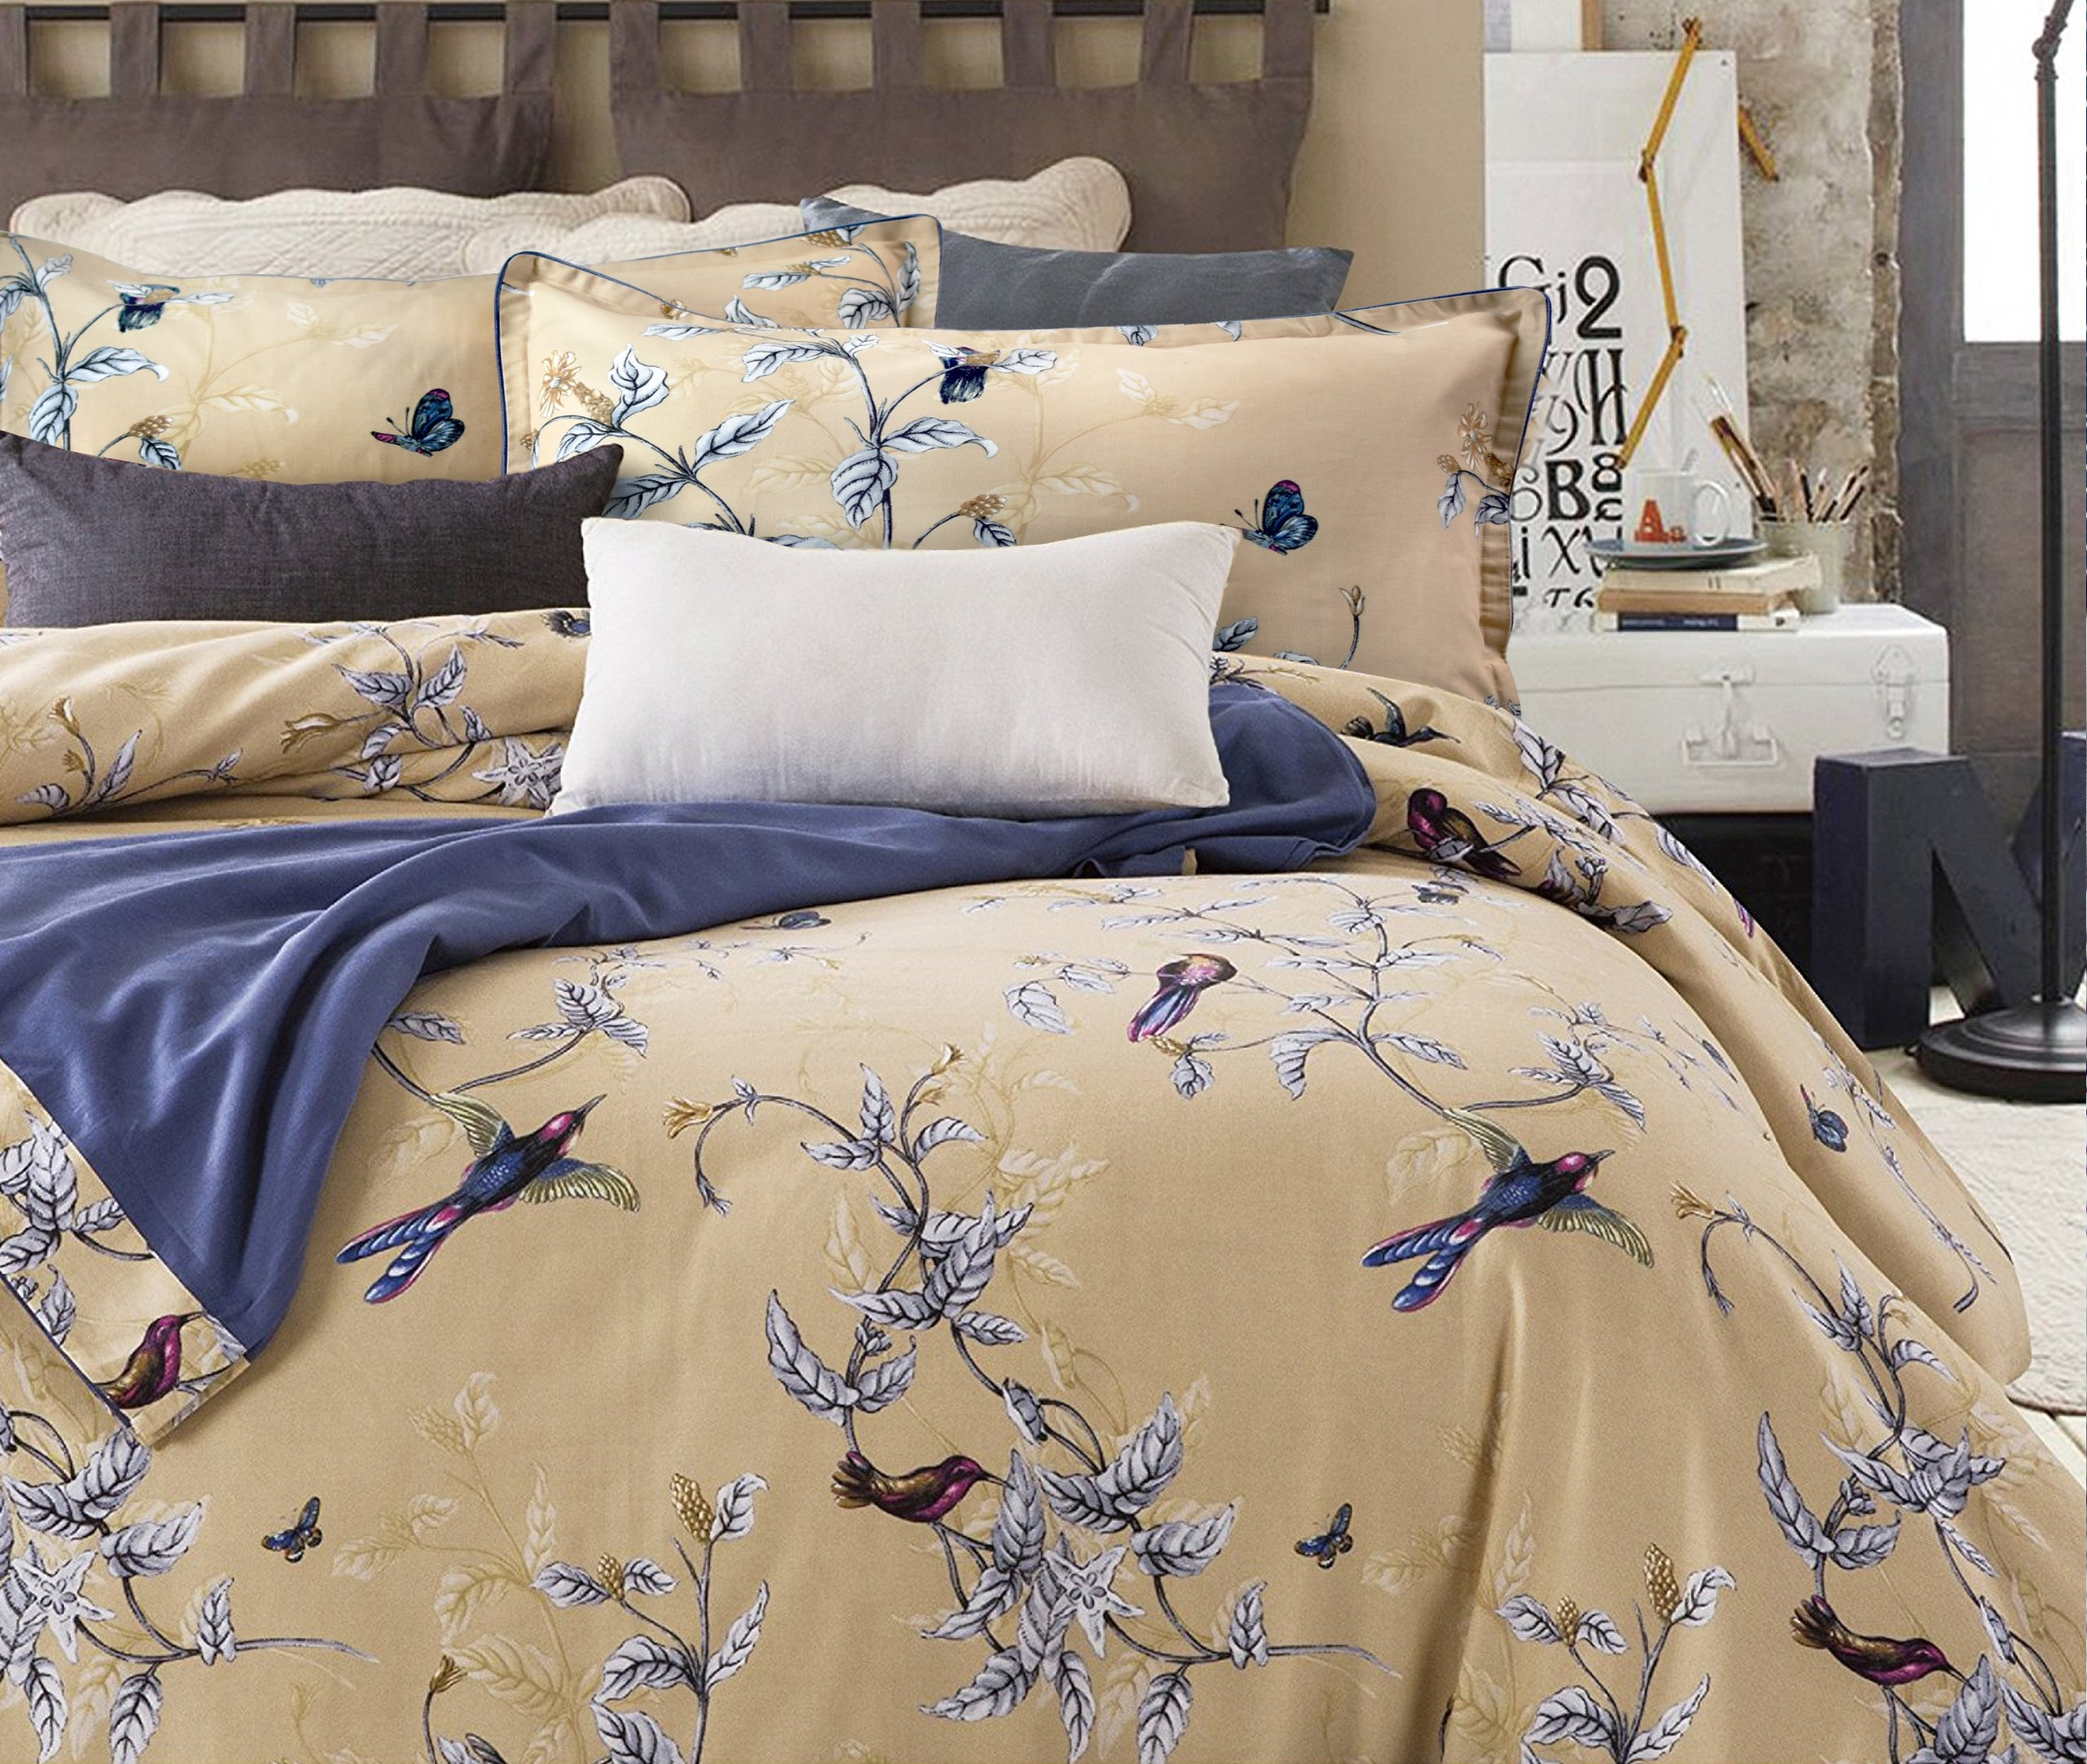 ruching floral piece homes walmart set gardens com bedding better ip vintage comforter and comforters